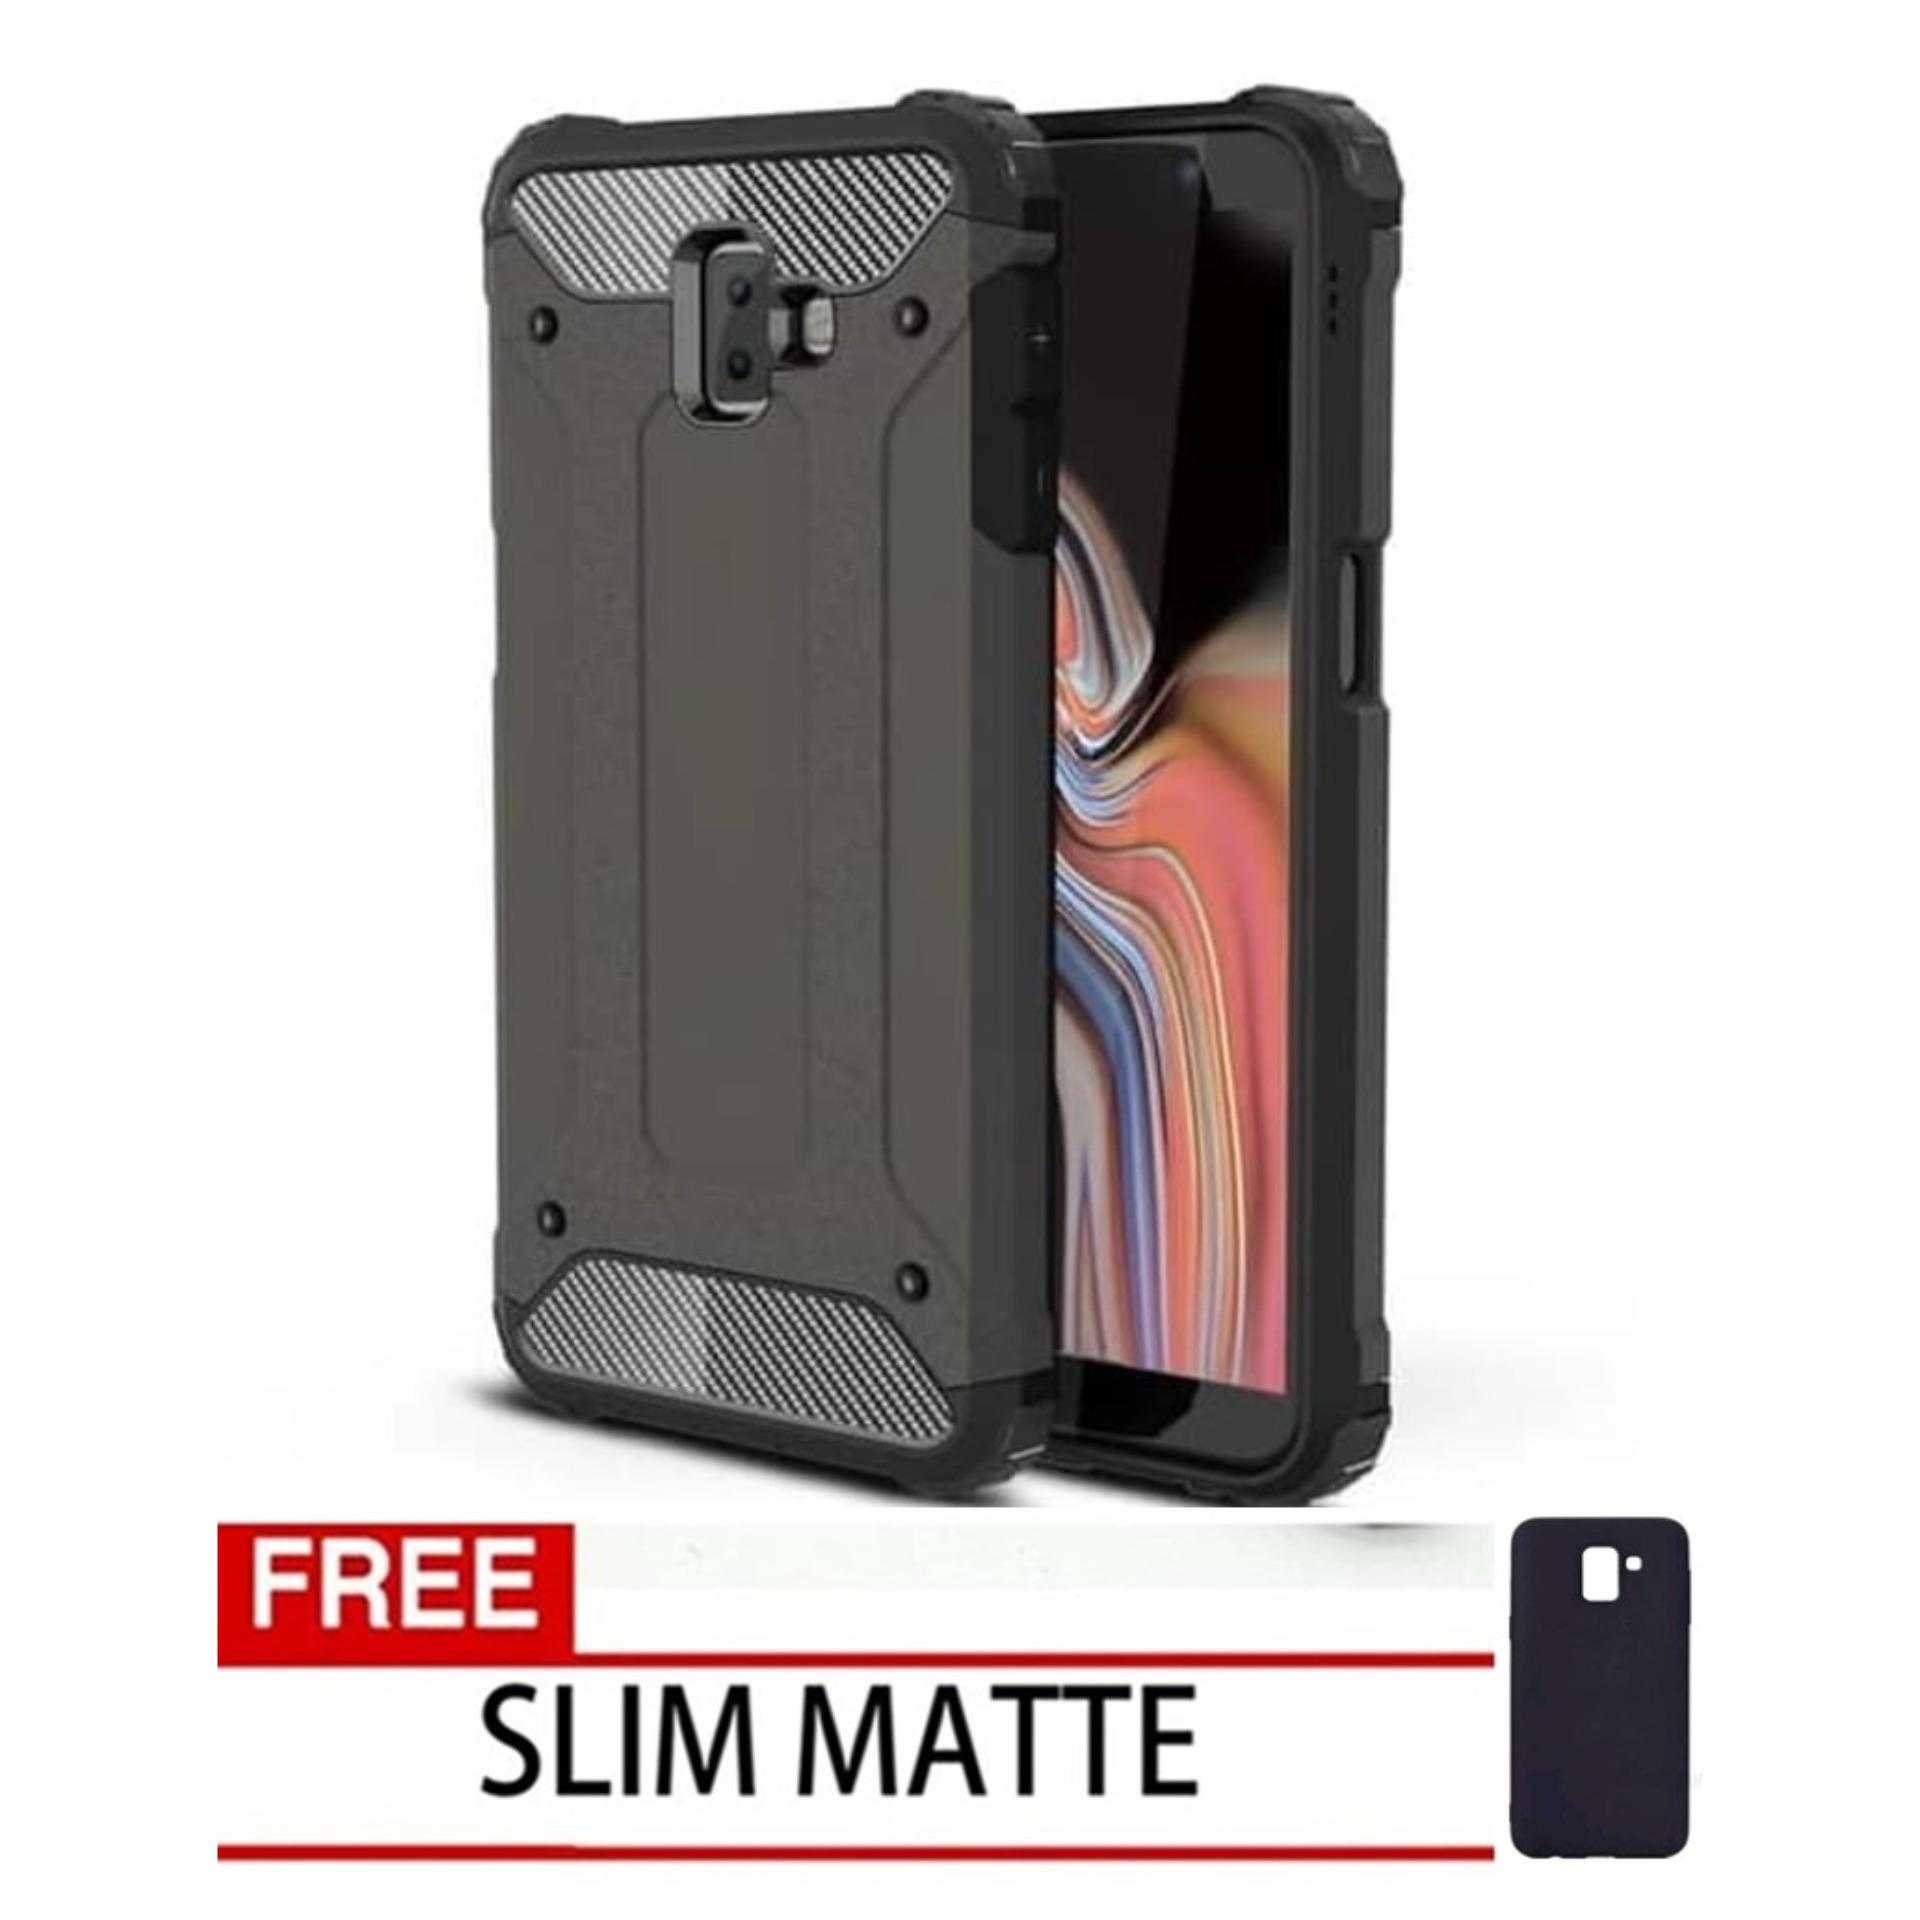 Case Hard Cover Robot Shockproof Armor For Samsung Galaxy J6 Plus 2018 - Black FREE Slim